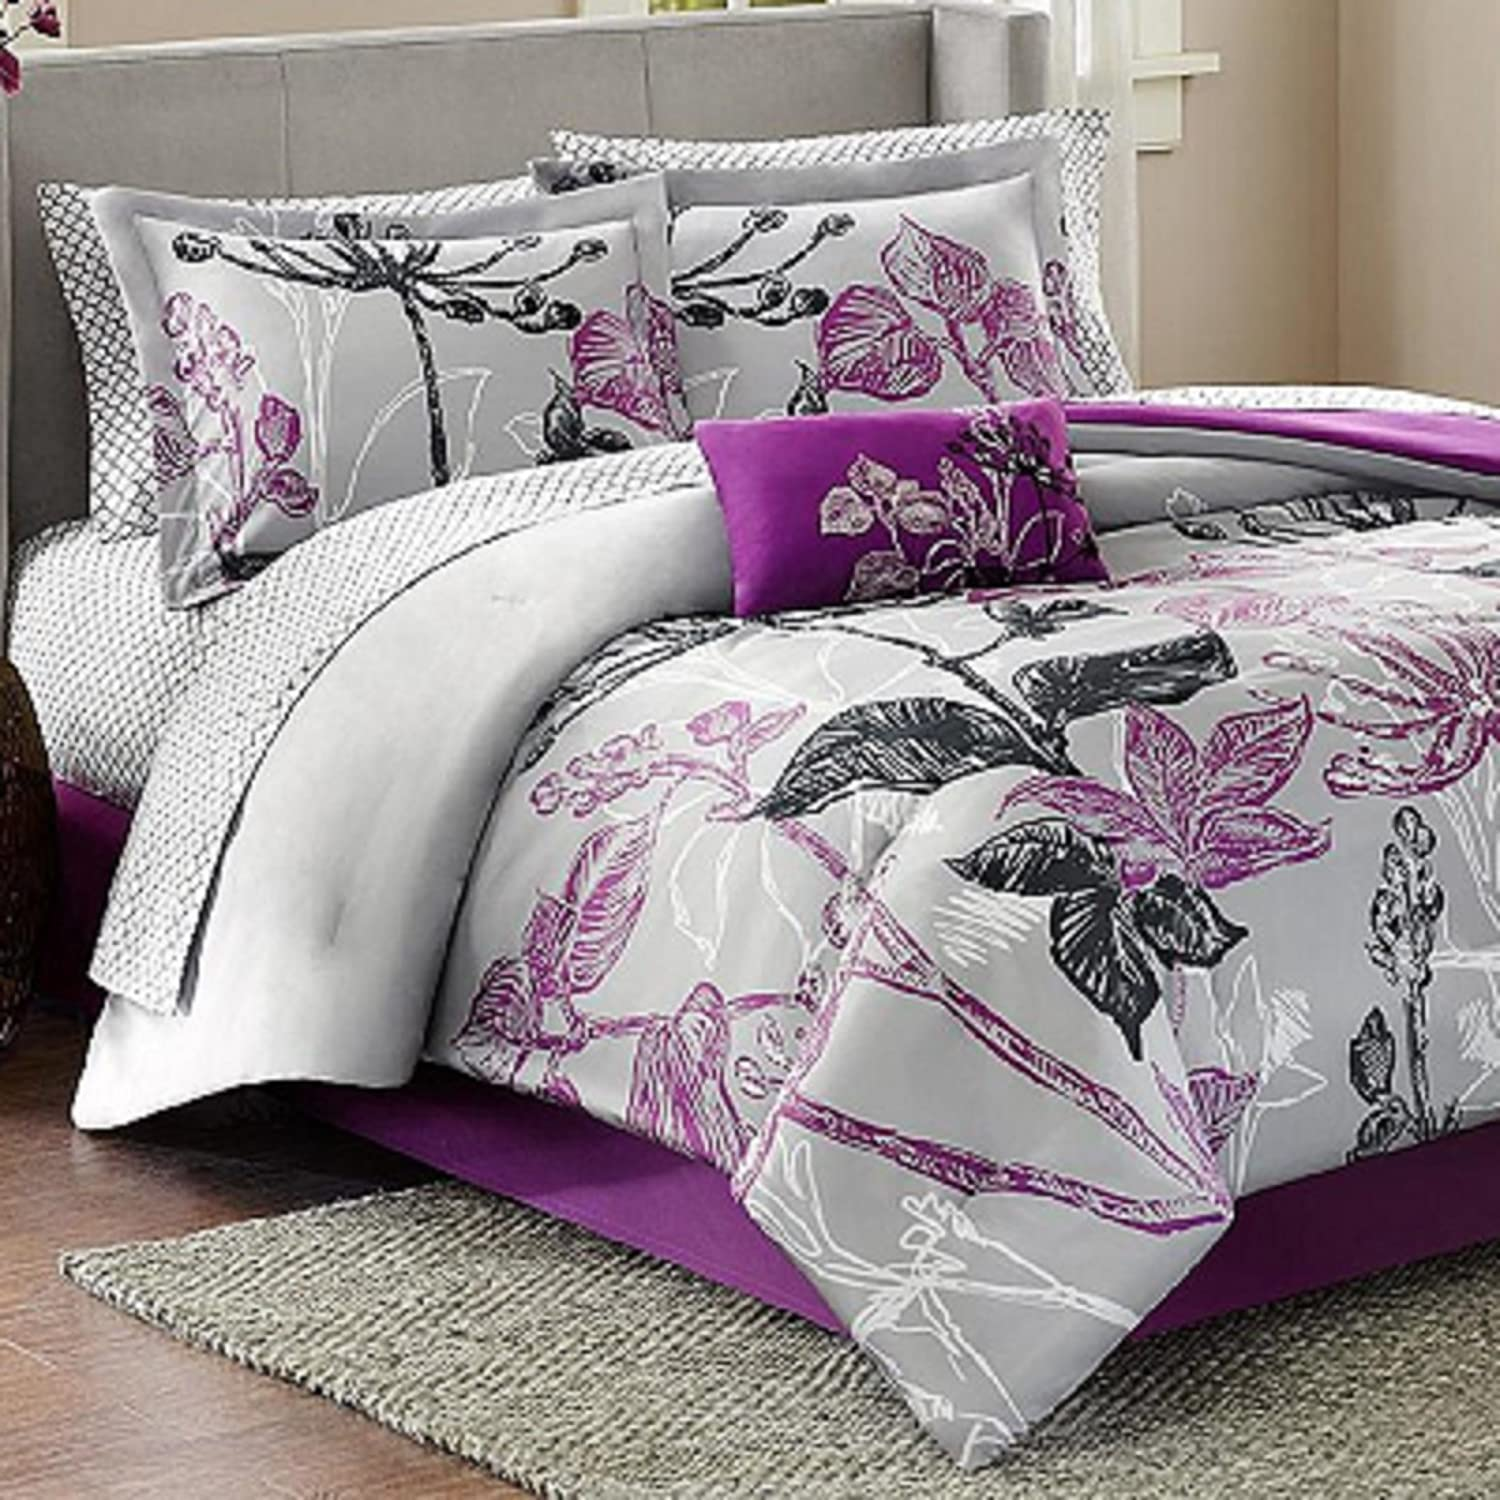 Madison Park Essentials Claremont Complete Bed and Sheet Set, King, Purple